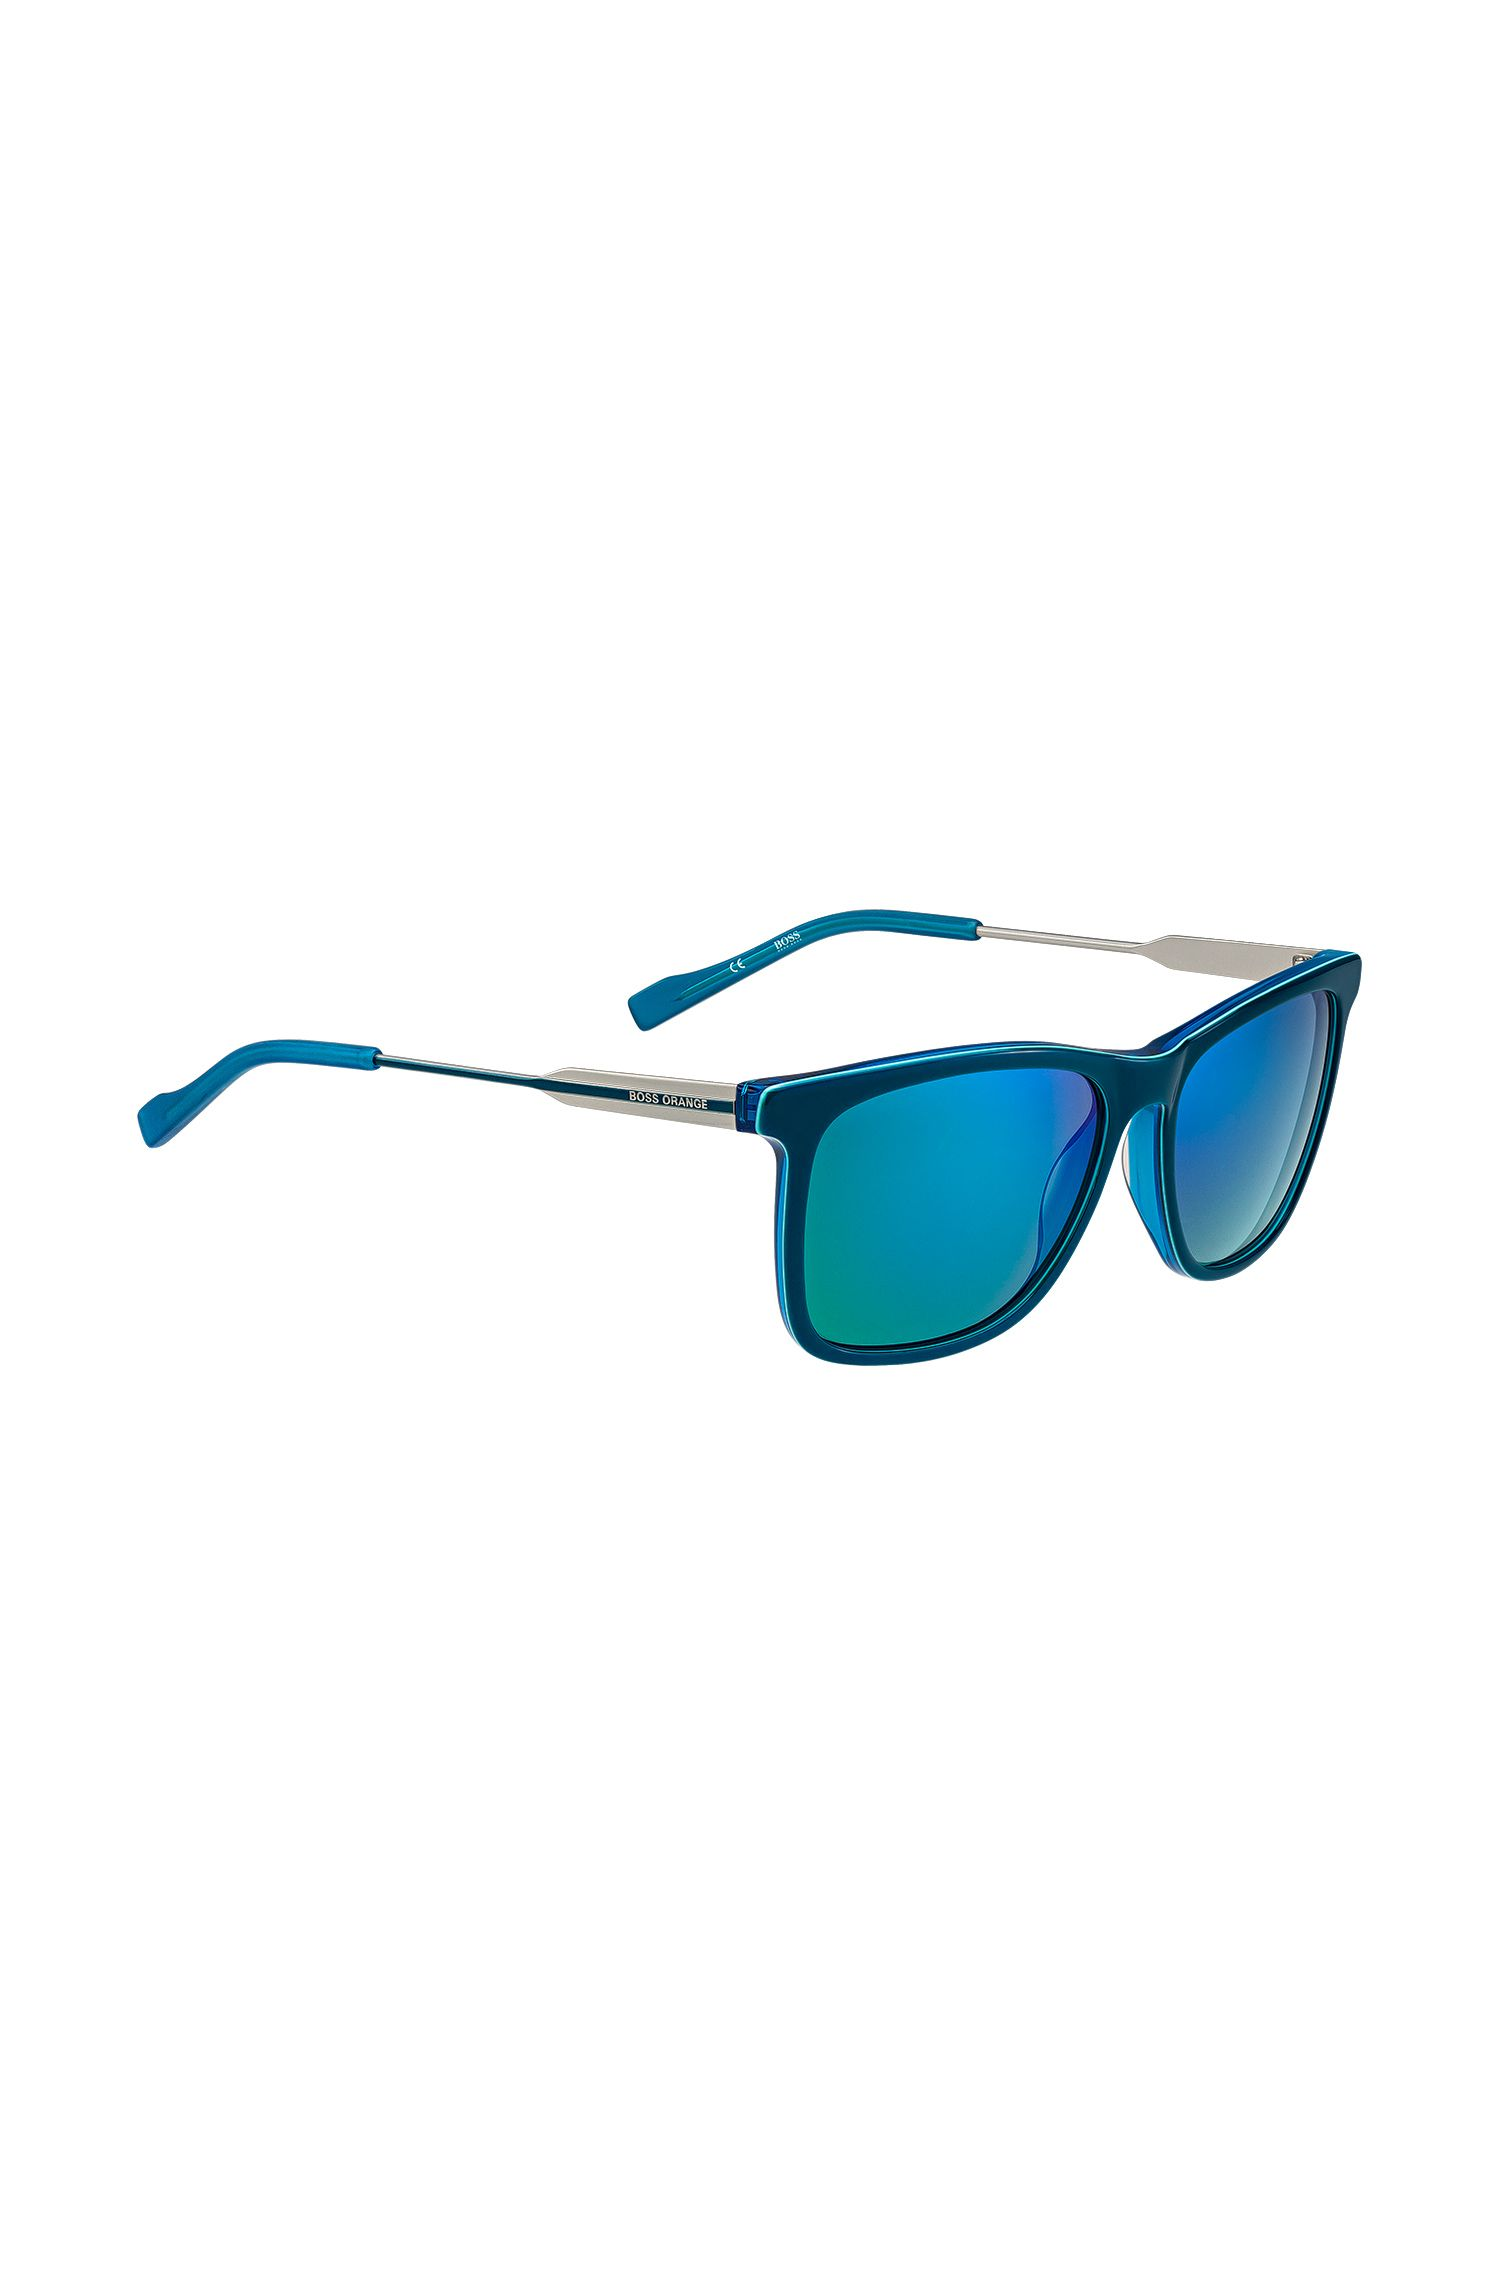 Sunglasses: 'BO 0299/S'